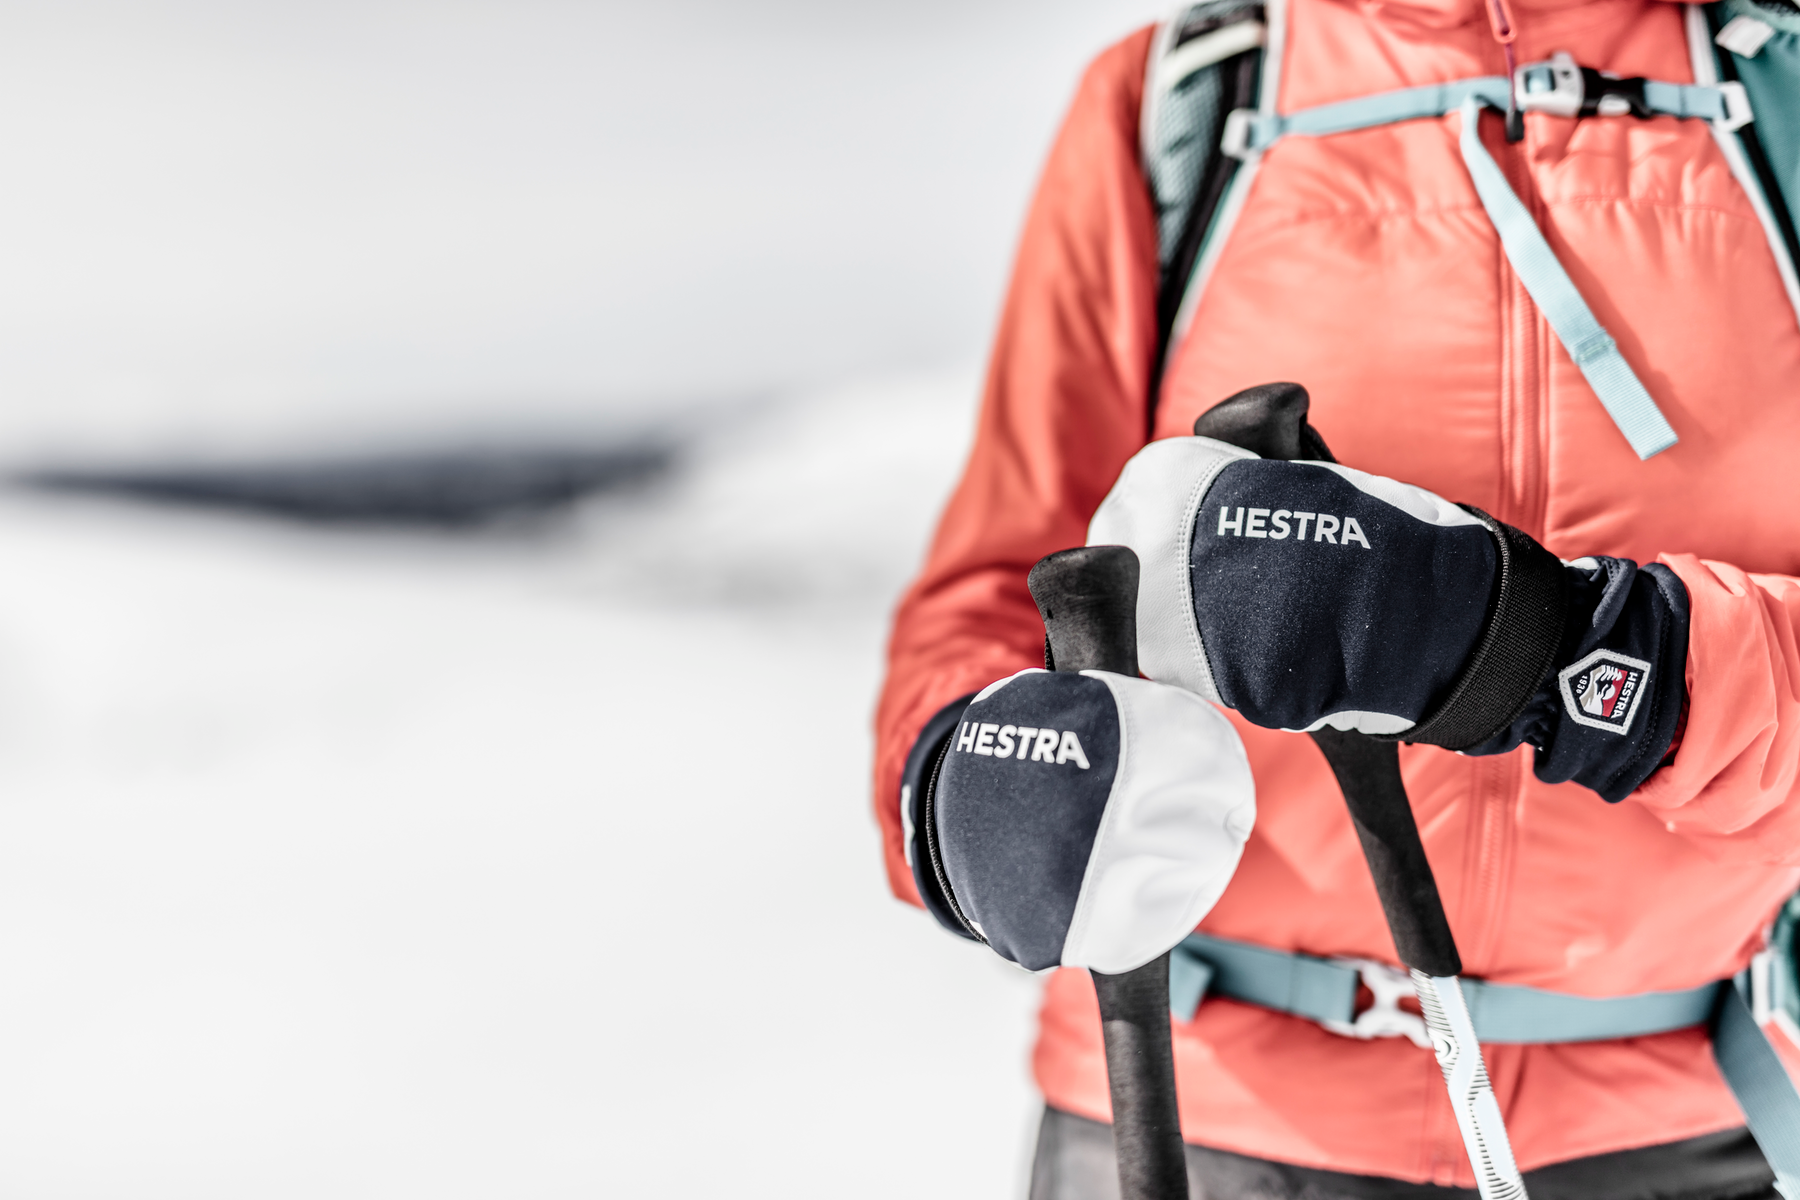 Hestra Gloves and Our Picks for 2021